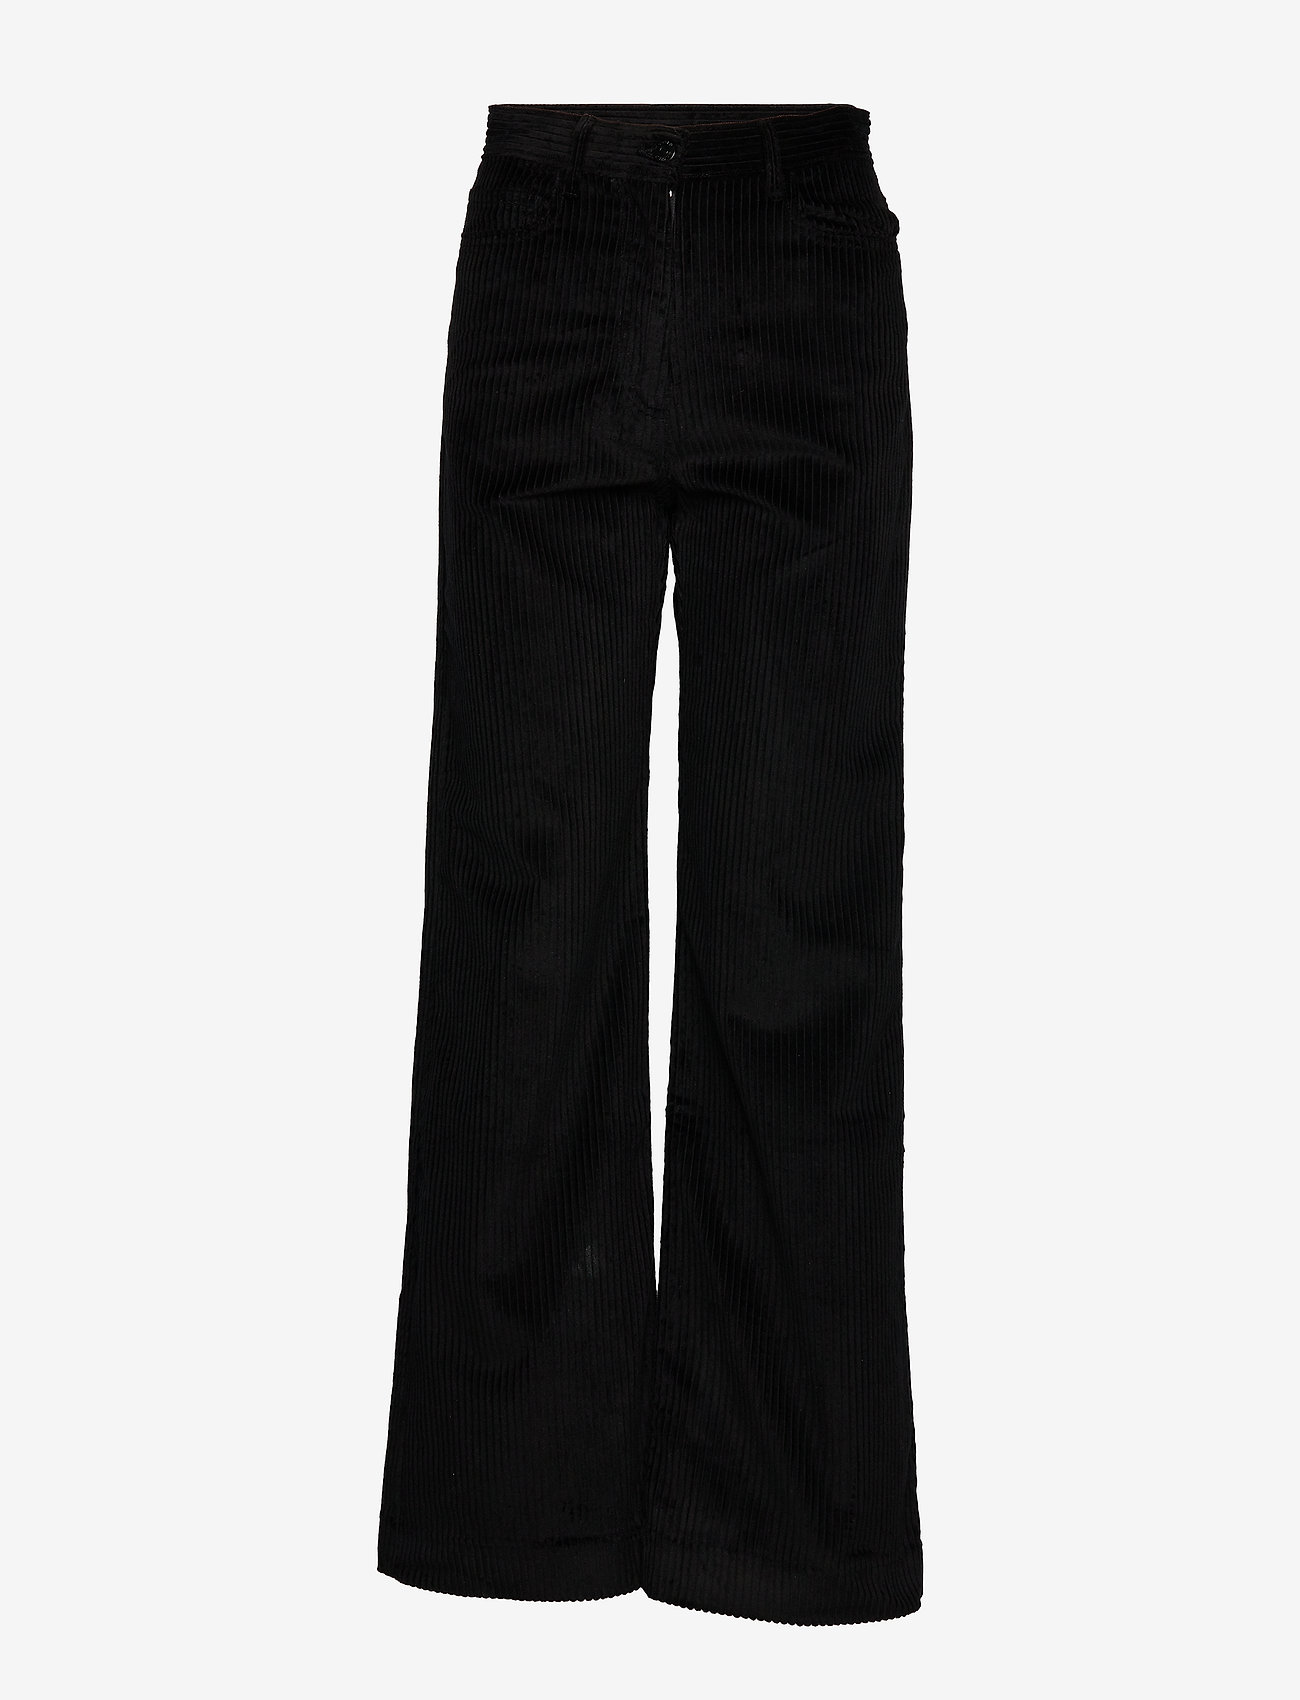 Whyred - RUTH - wide leg trousers - black - 0